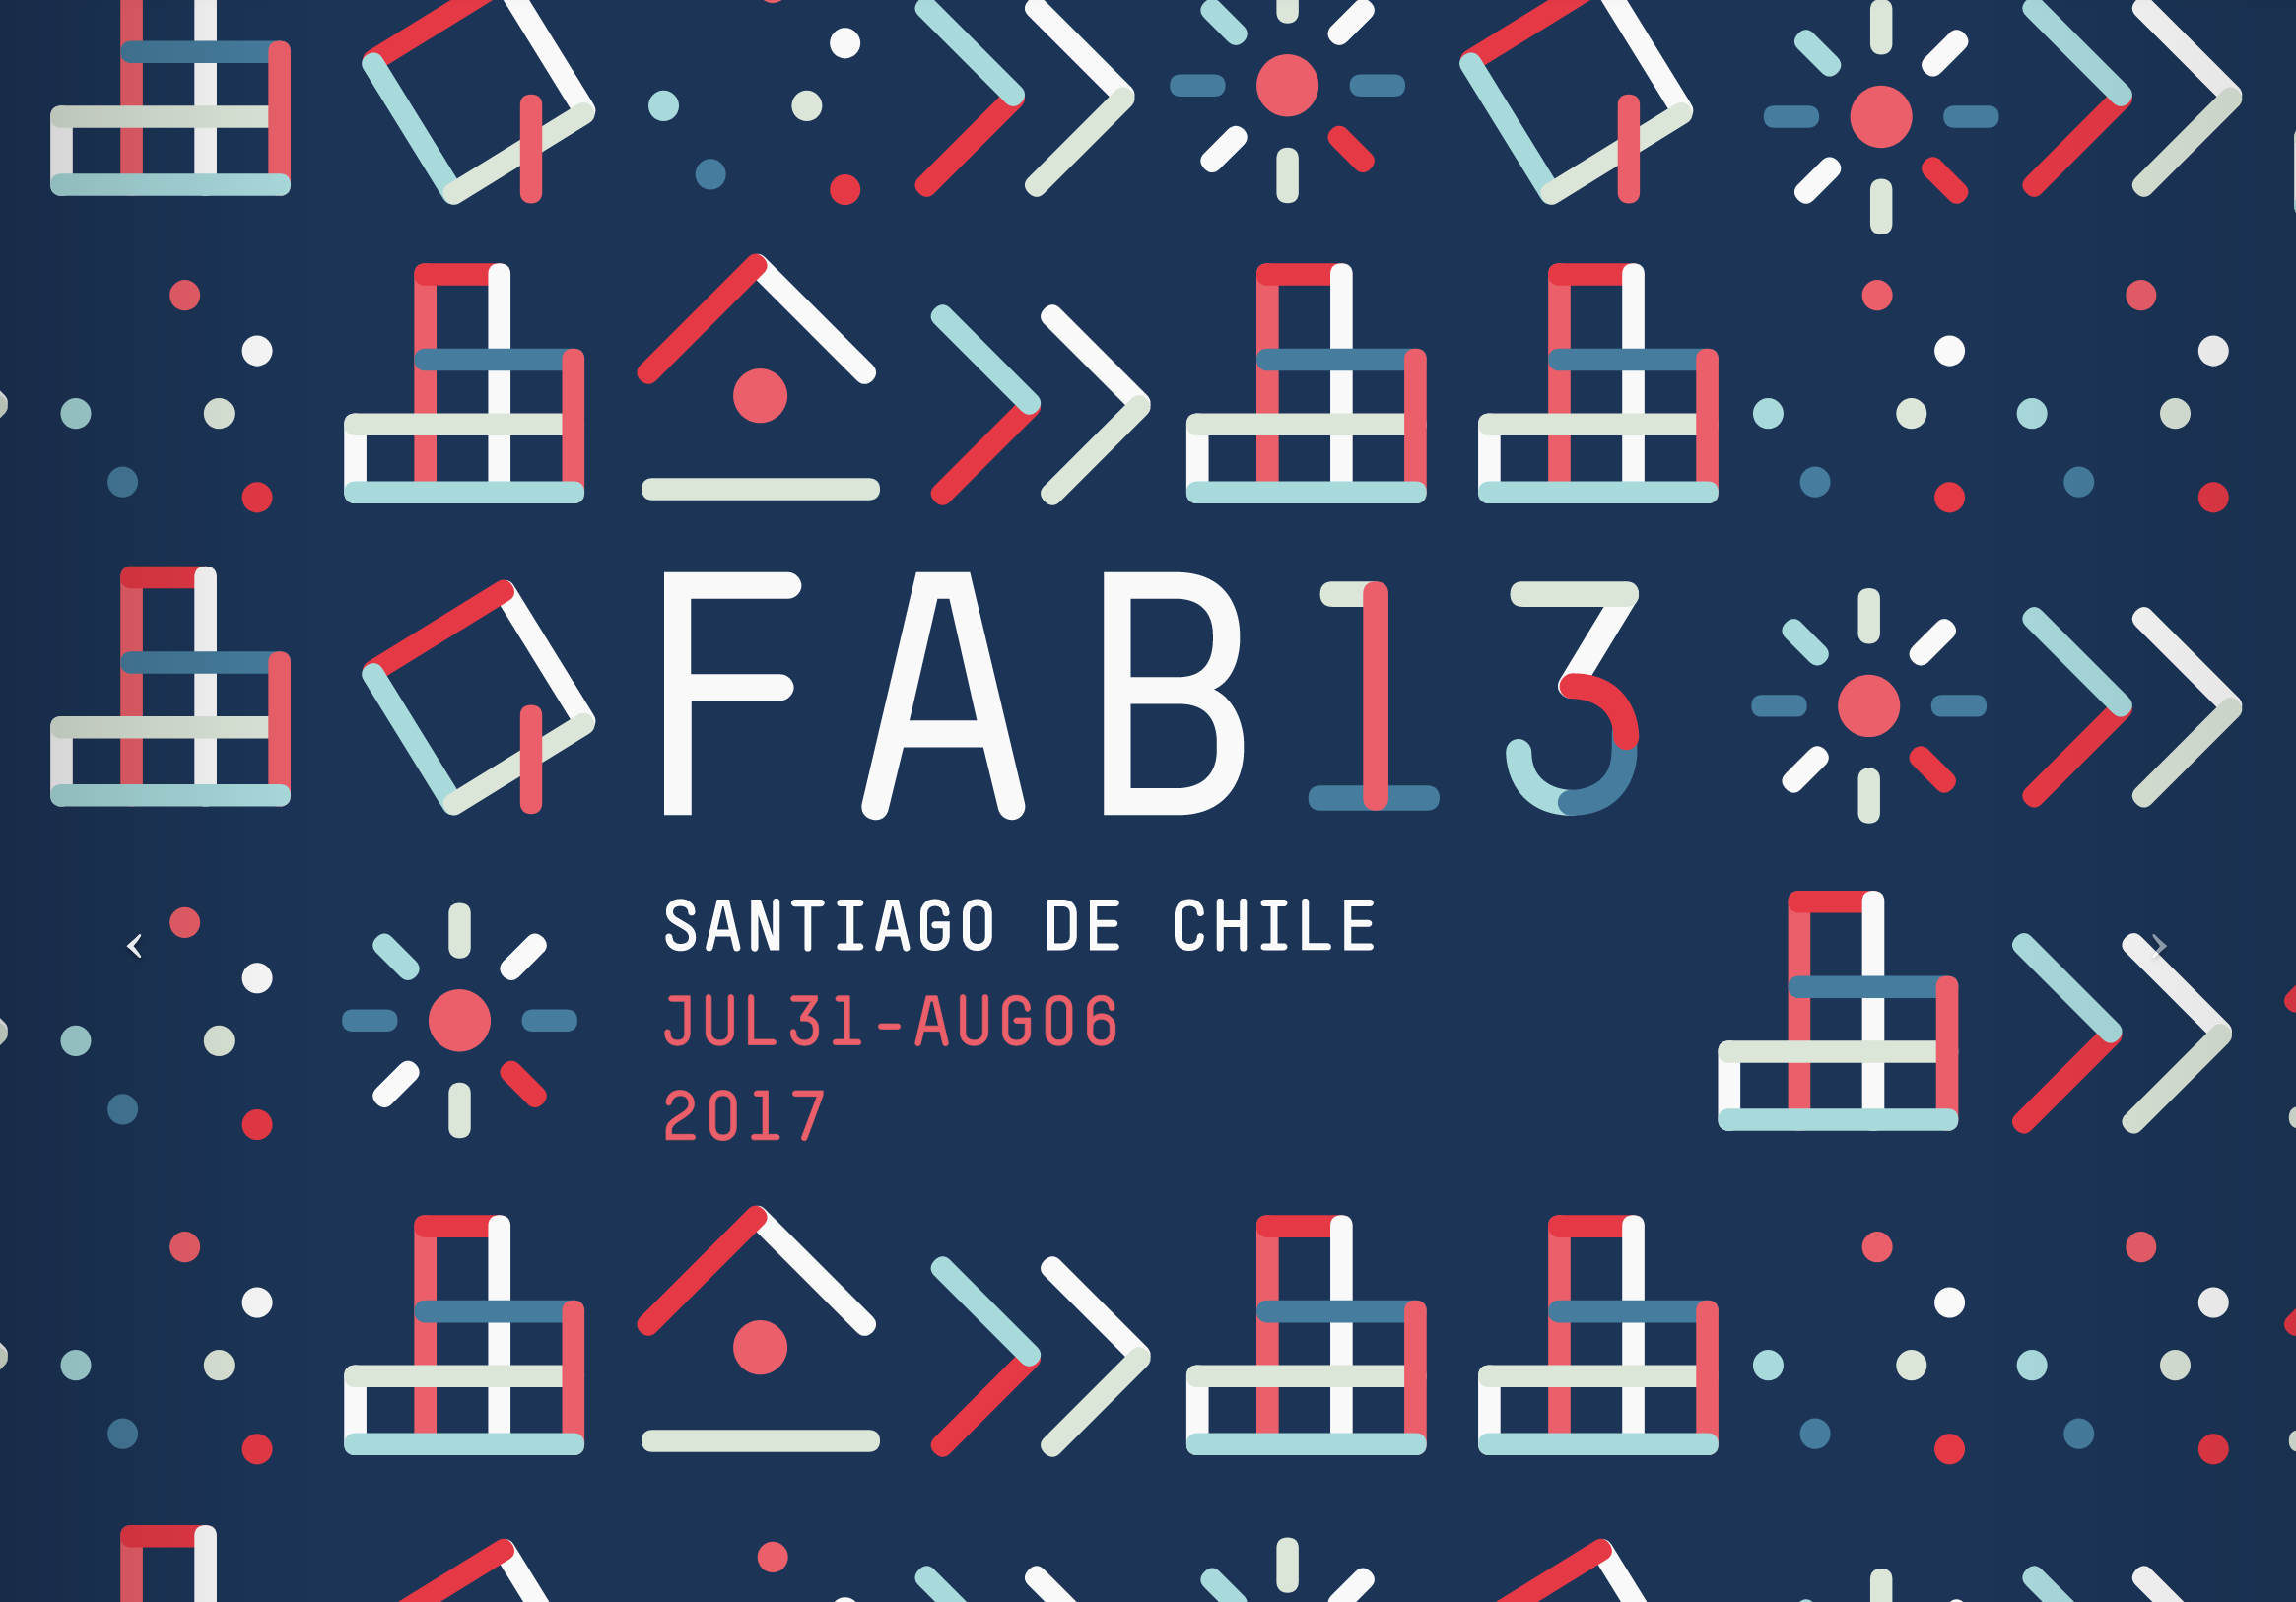 Fab13 Off To A Great Start! - Santiago, Chile